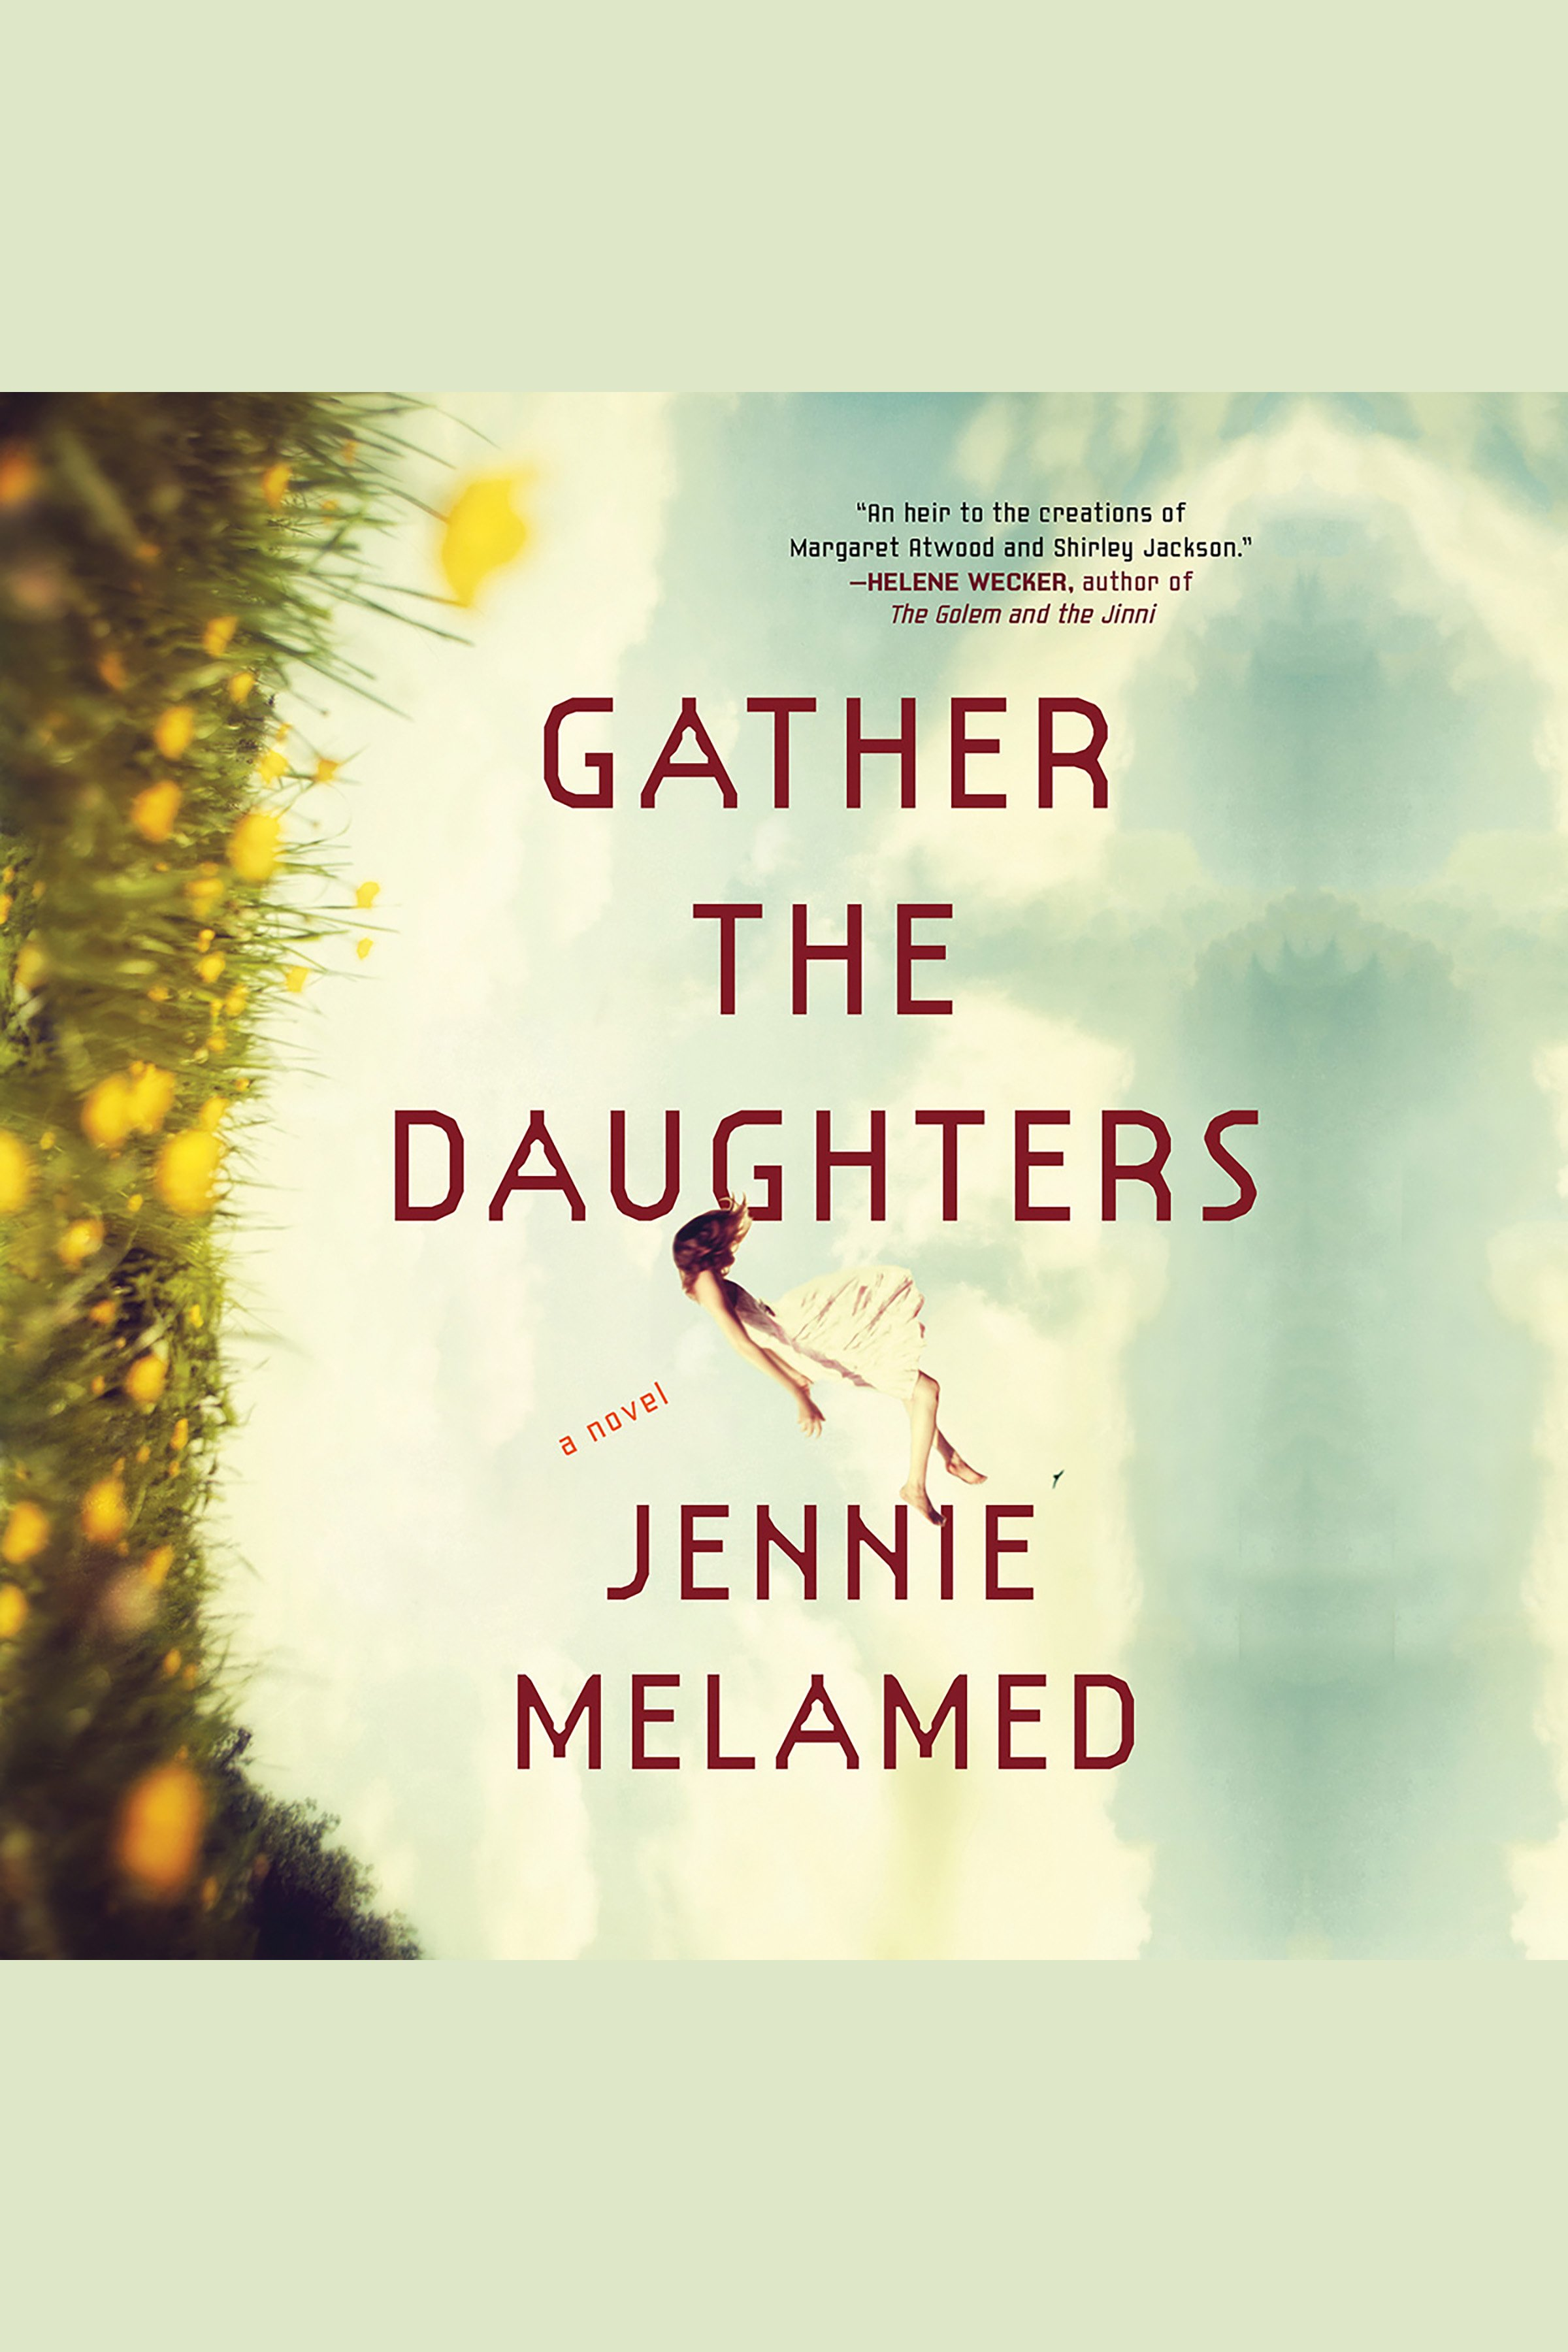 Gather the Daughters cover image